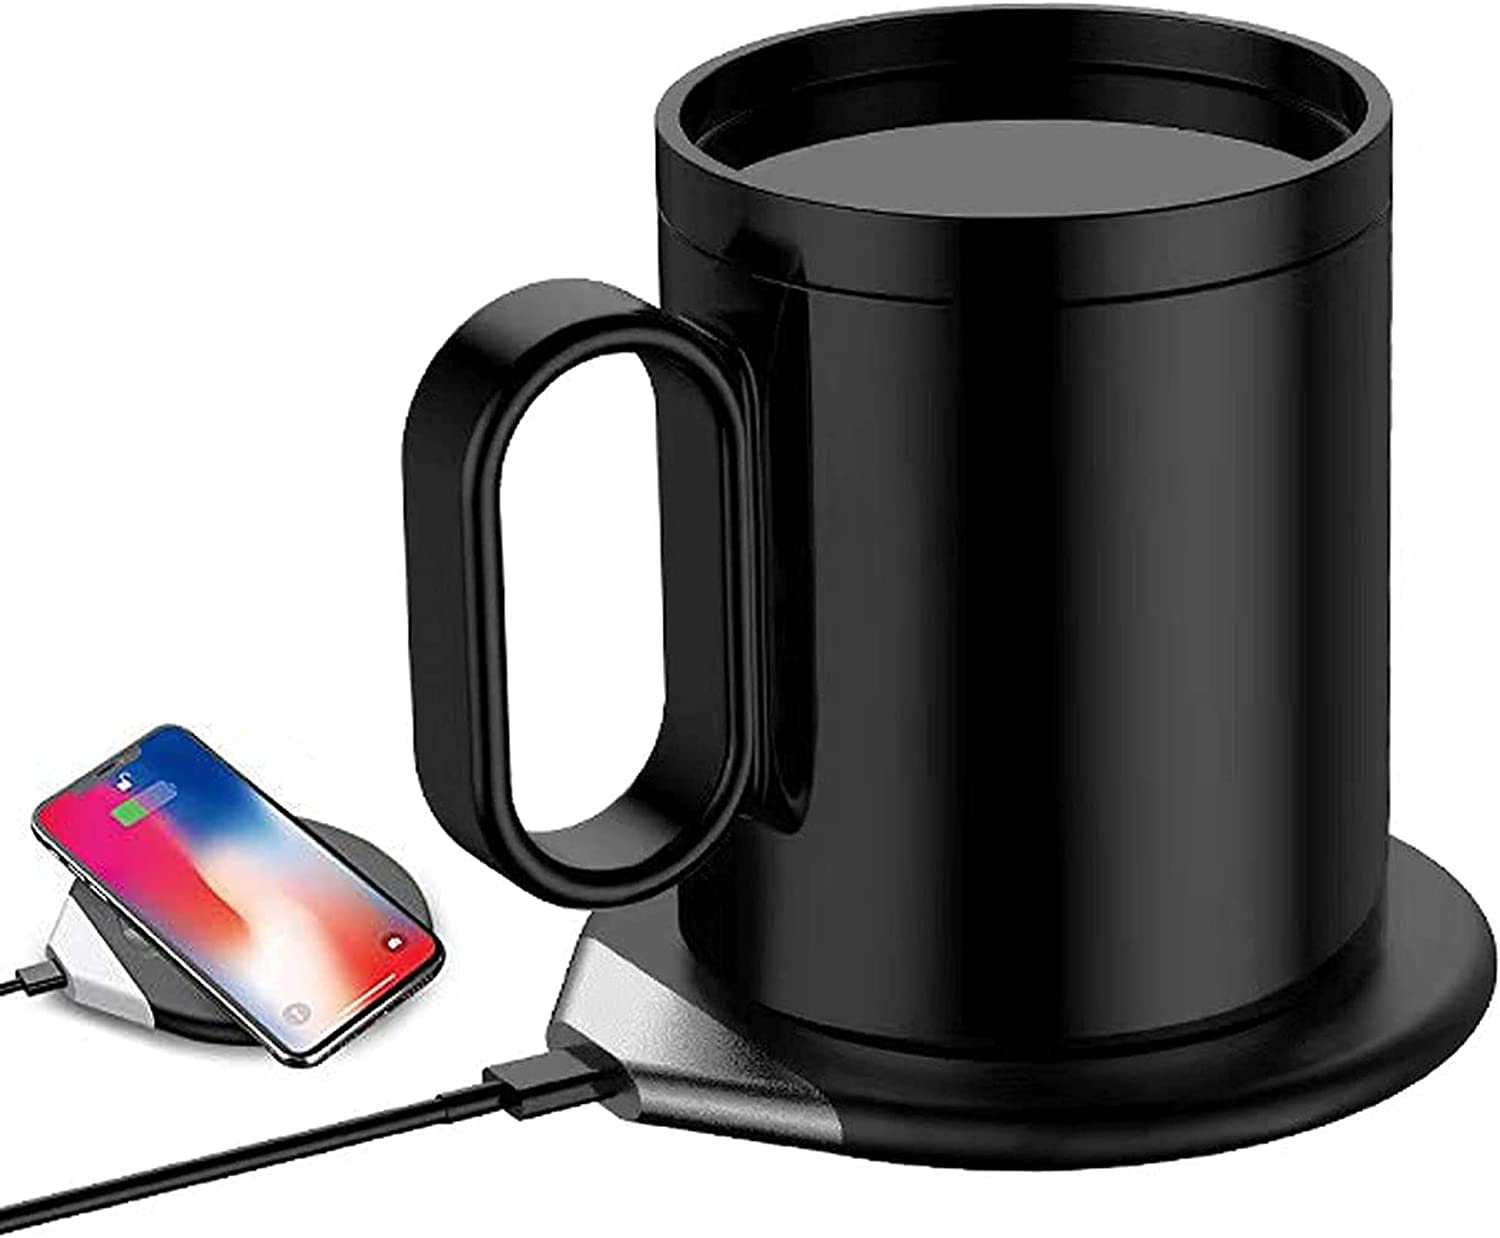 Mug Warmer Wireless Charger Discount is also Max 64% OFF underway Pad Charging Coffee